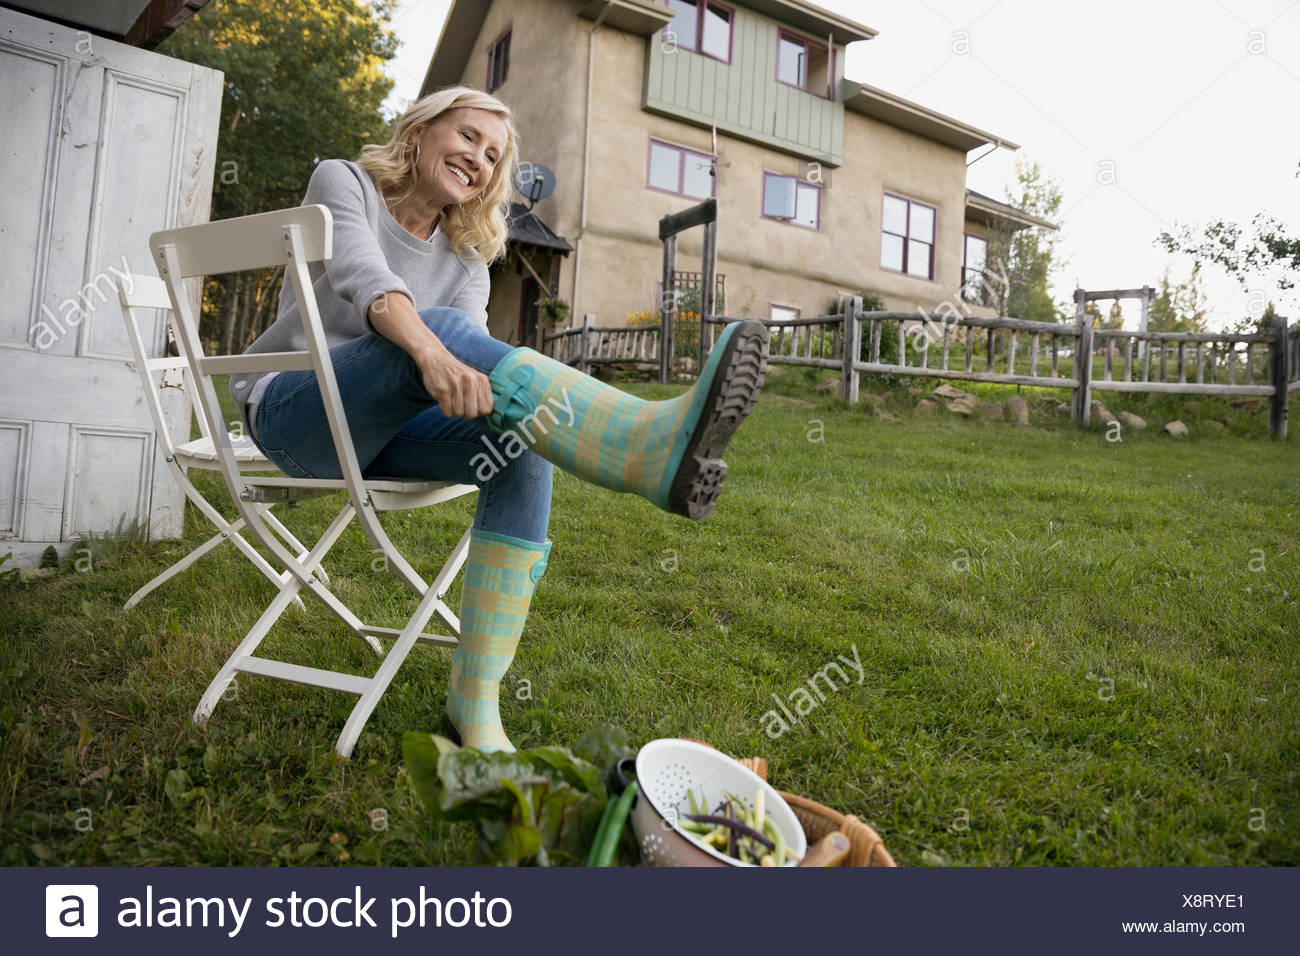 l chelnde frau anziehen gummistiefel im garten stockfoto bild 280809593 alamy. Black Bedroom Furniture Sets. Home Design Ideas